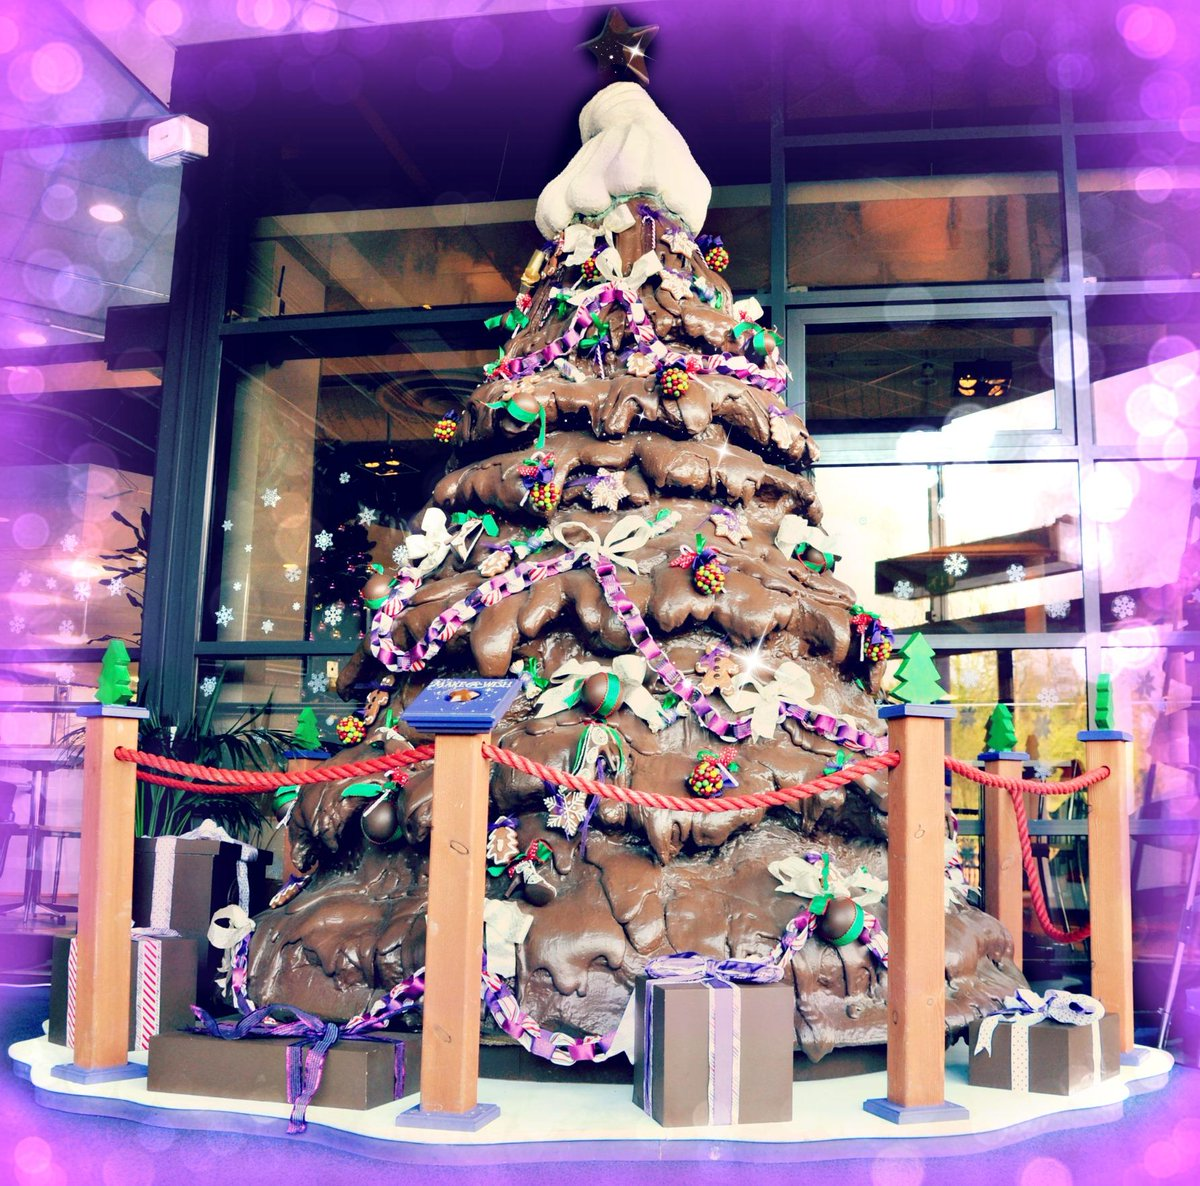 It's beginning to look a lot like Christmas at Cadbury World! #christmas #grotto http://t.co/LBUtTK4KMb